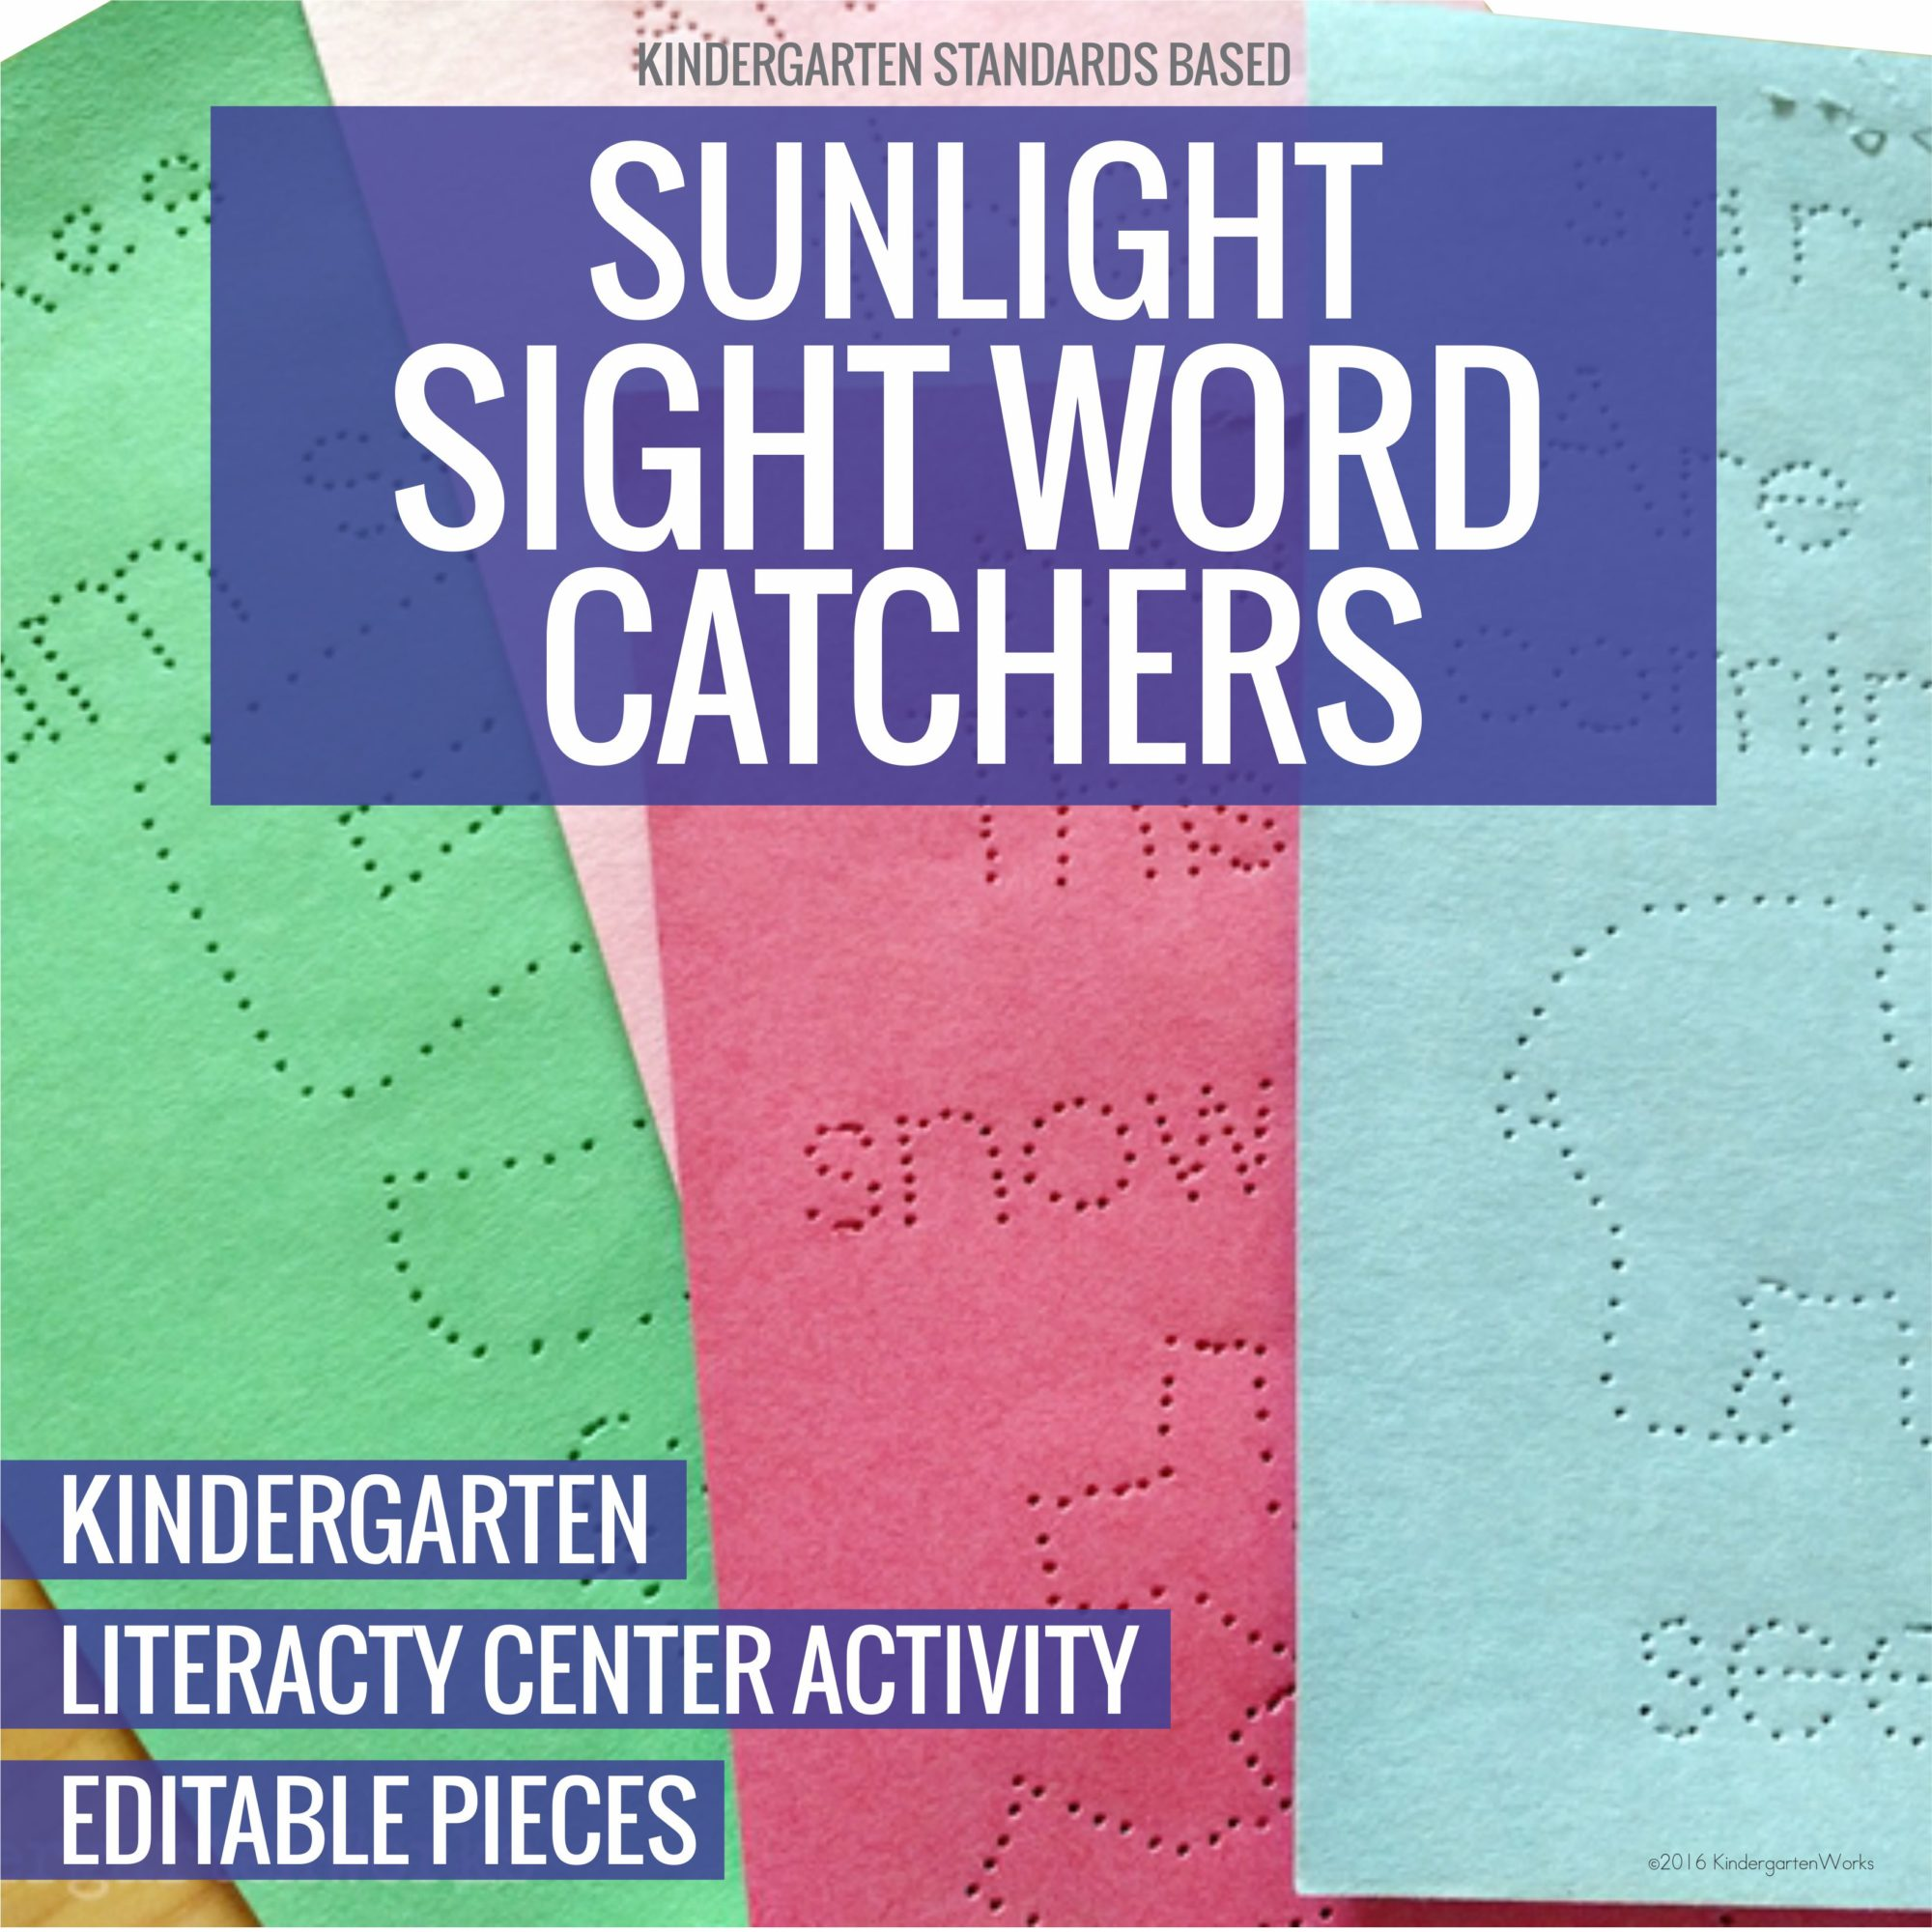 Pokey Pinning Sunlight Sight Word Catchers for Kindergarten